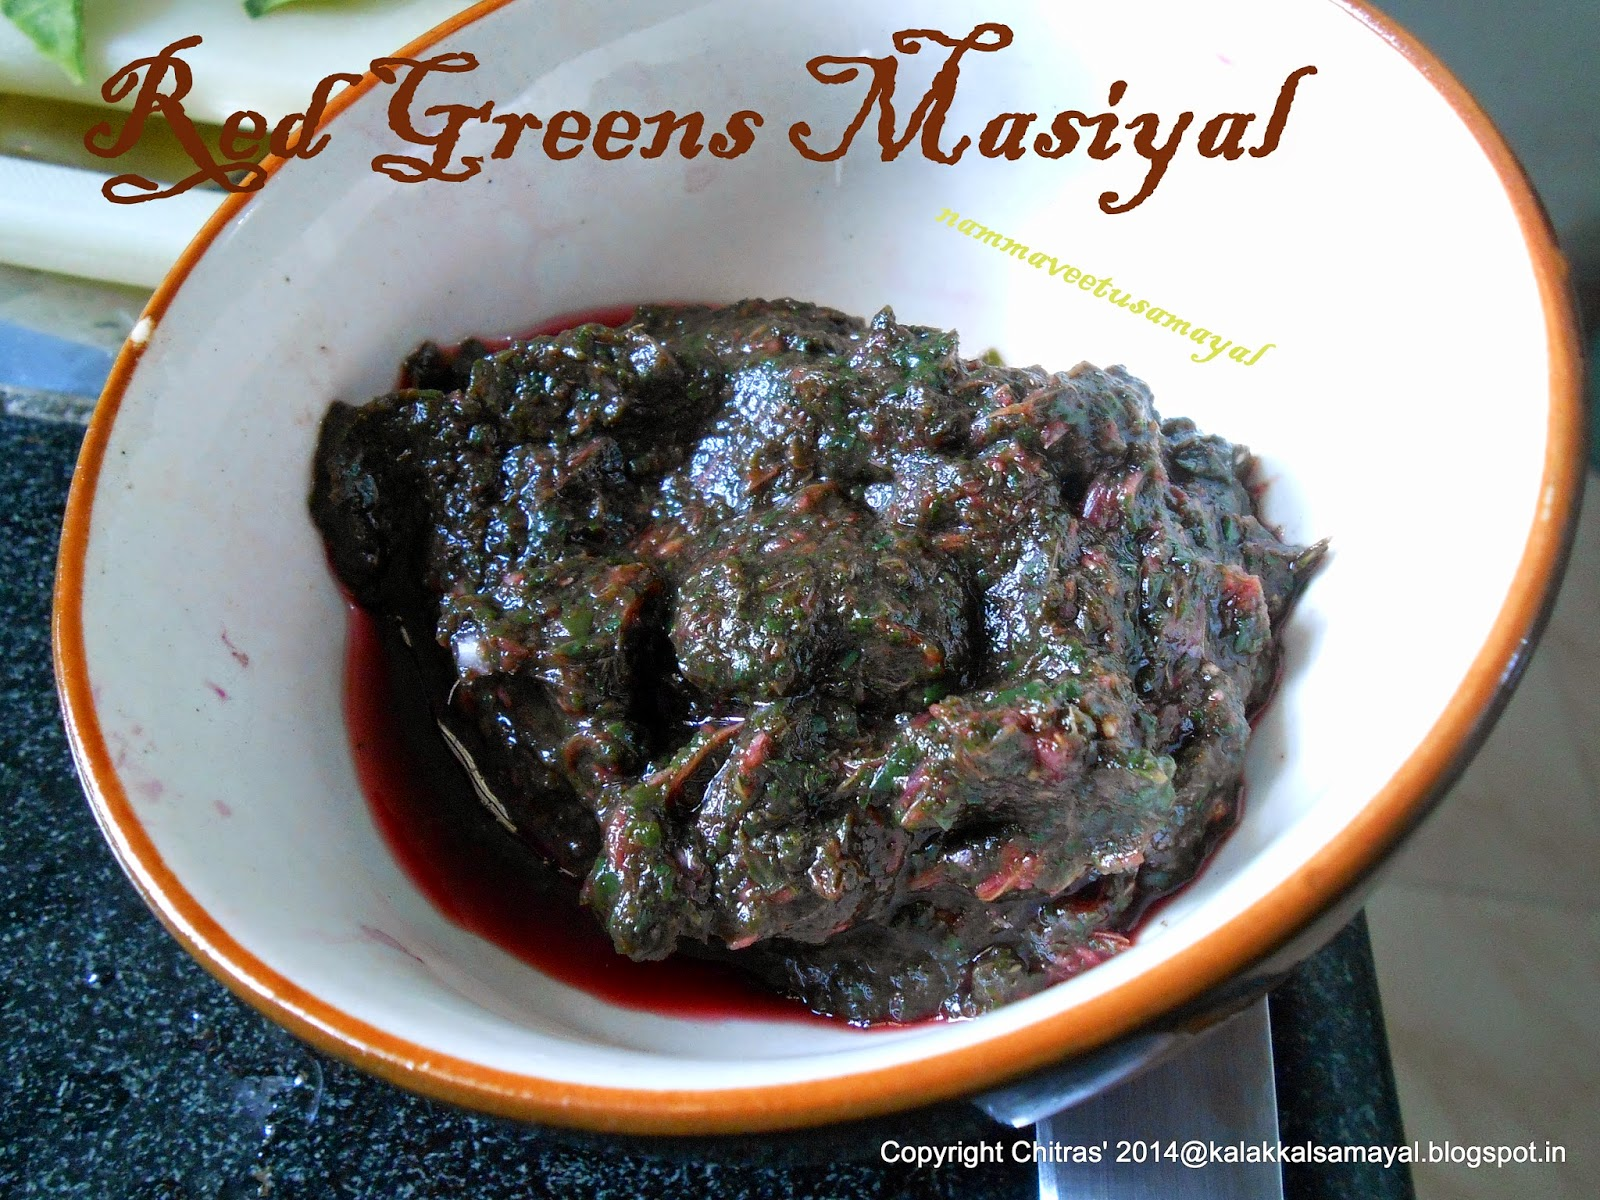 Red Greens Masiyal - Mashed Red Amaranth greens